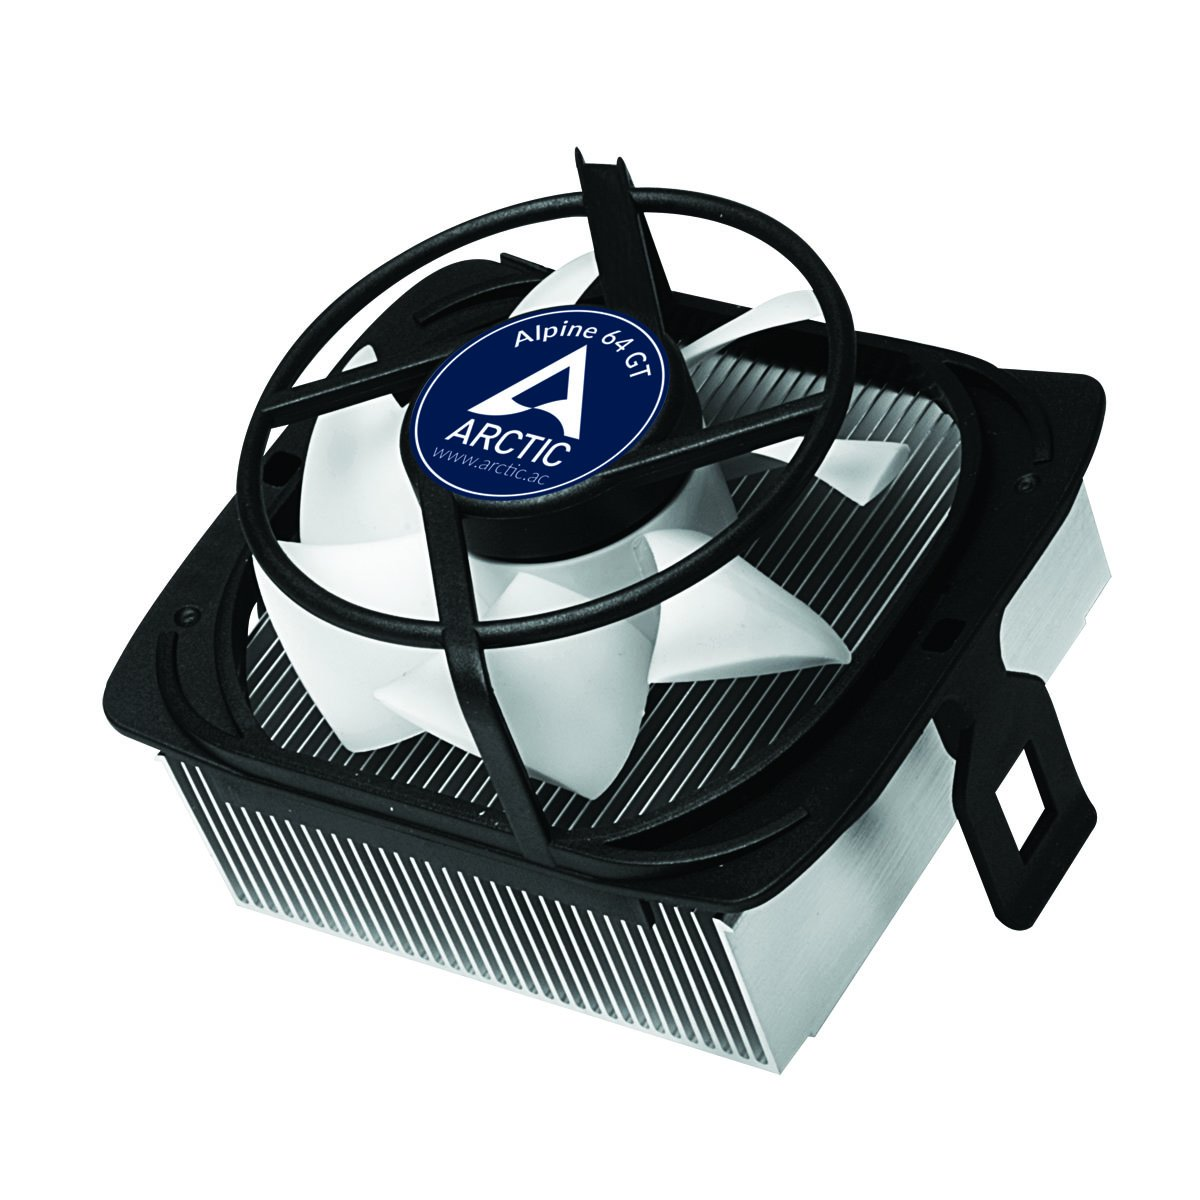 ARCTIC Alpine 64 GT - Supports AMD AM4 | CPU Cooler for Quietness I Ultra-Quiet 80mm PWM Fan